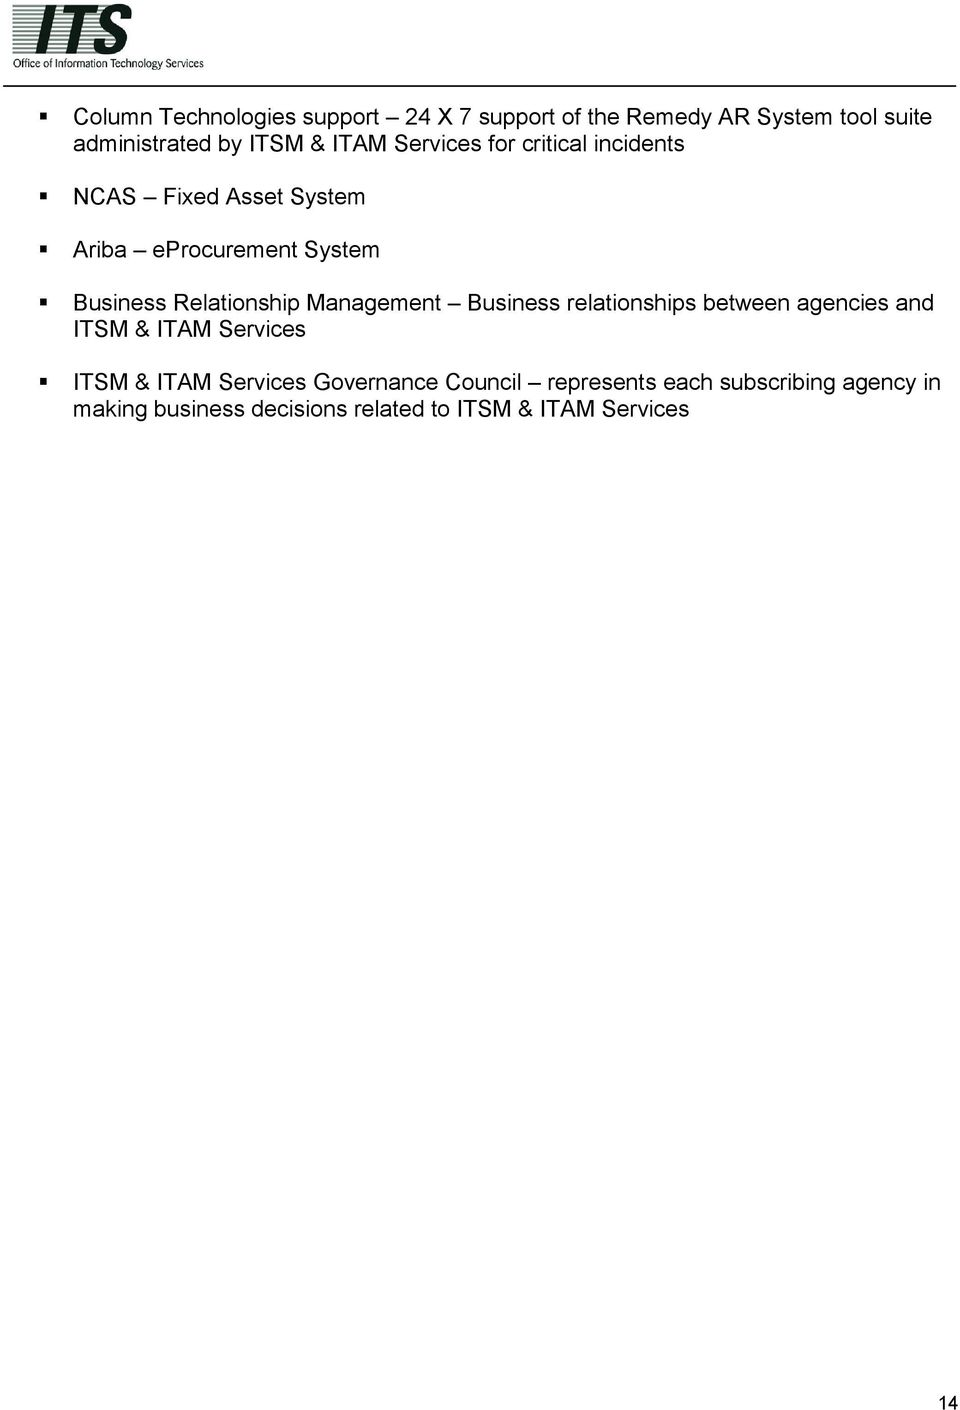 Management Business relationships between agencies and ITSM & ITAM Services ITSM & ITAM Services